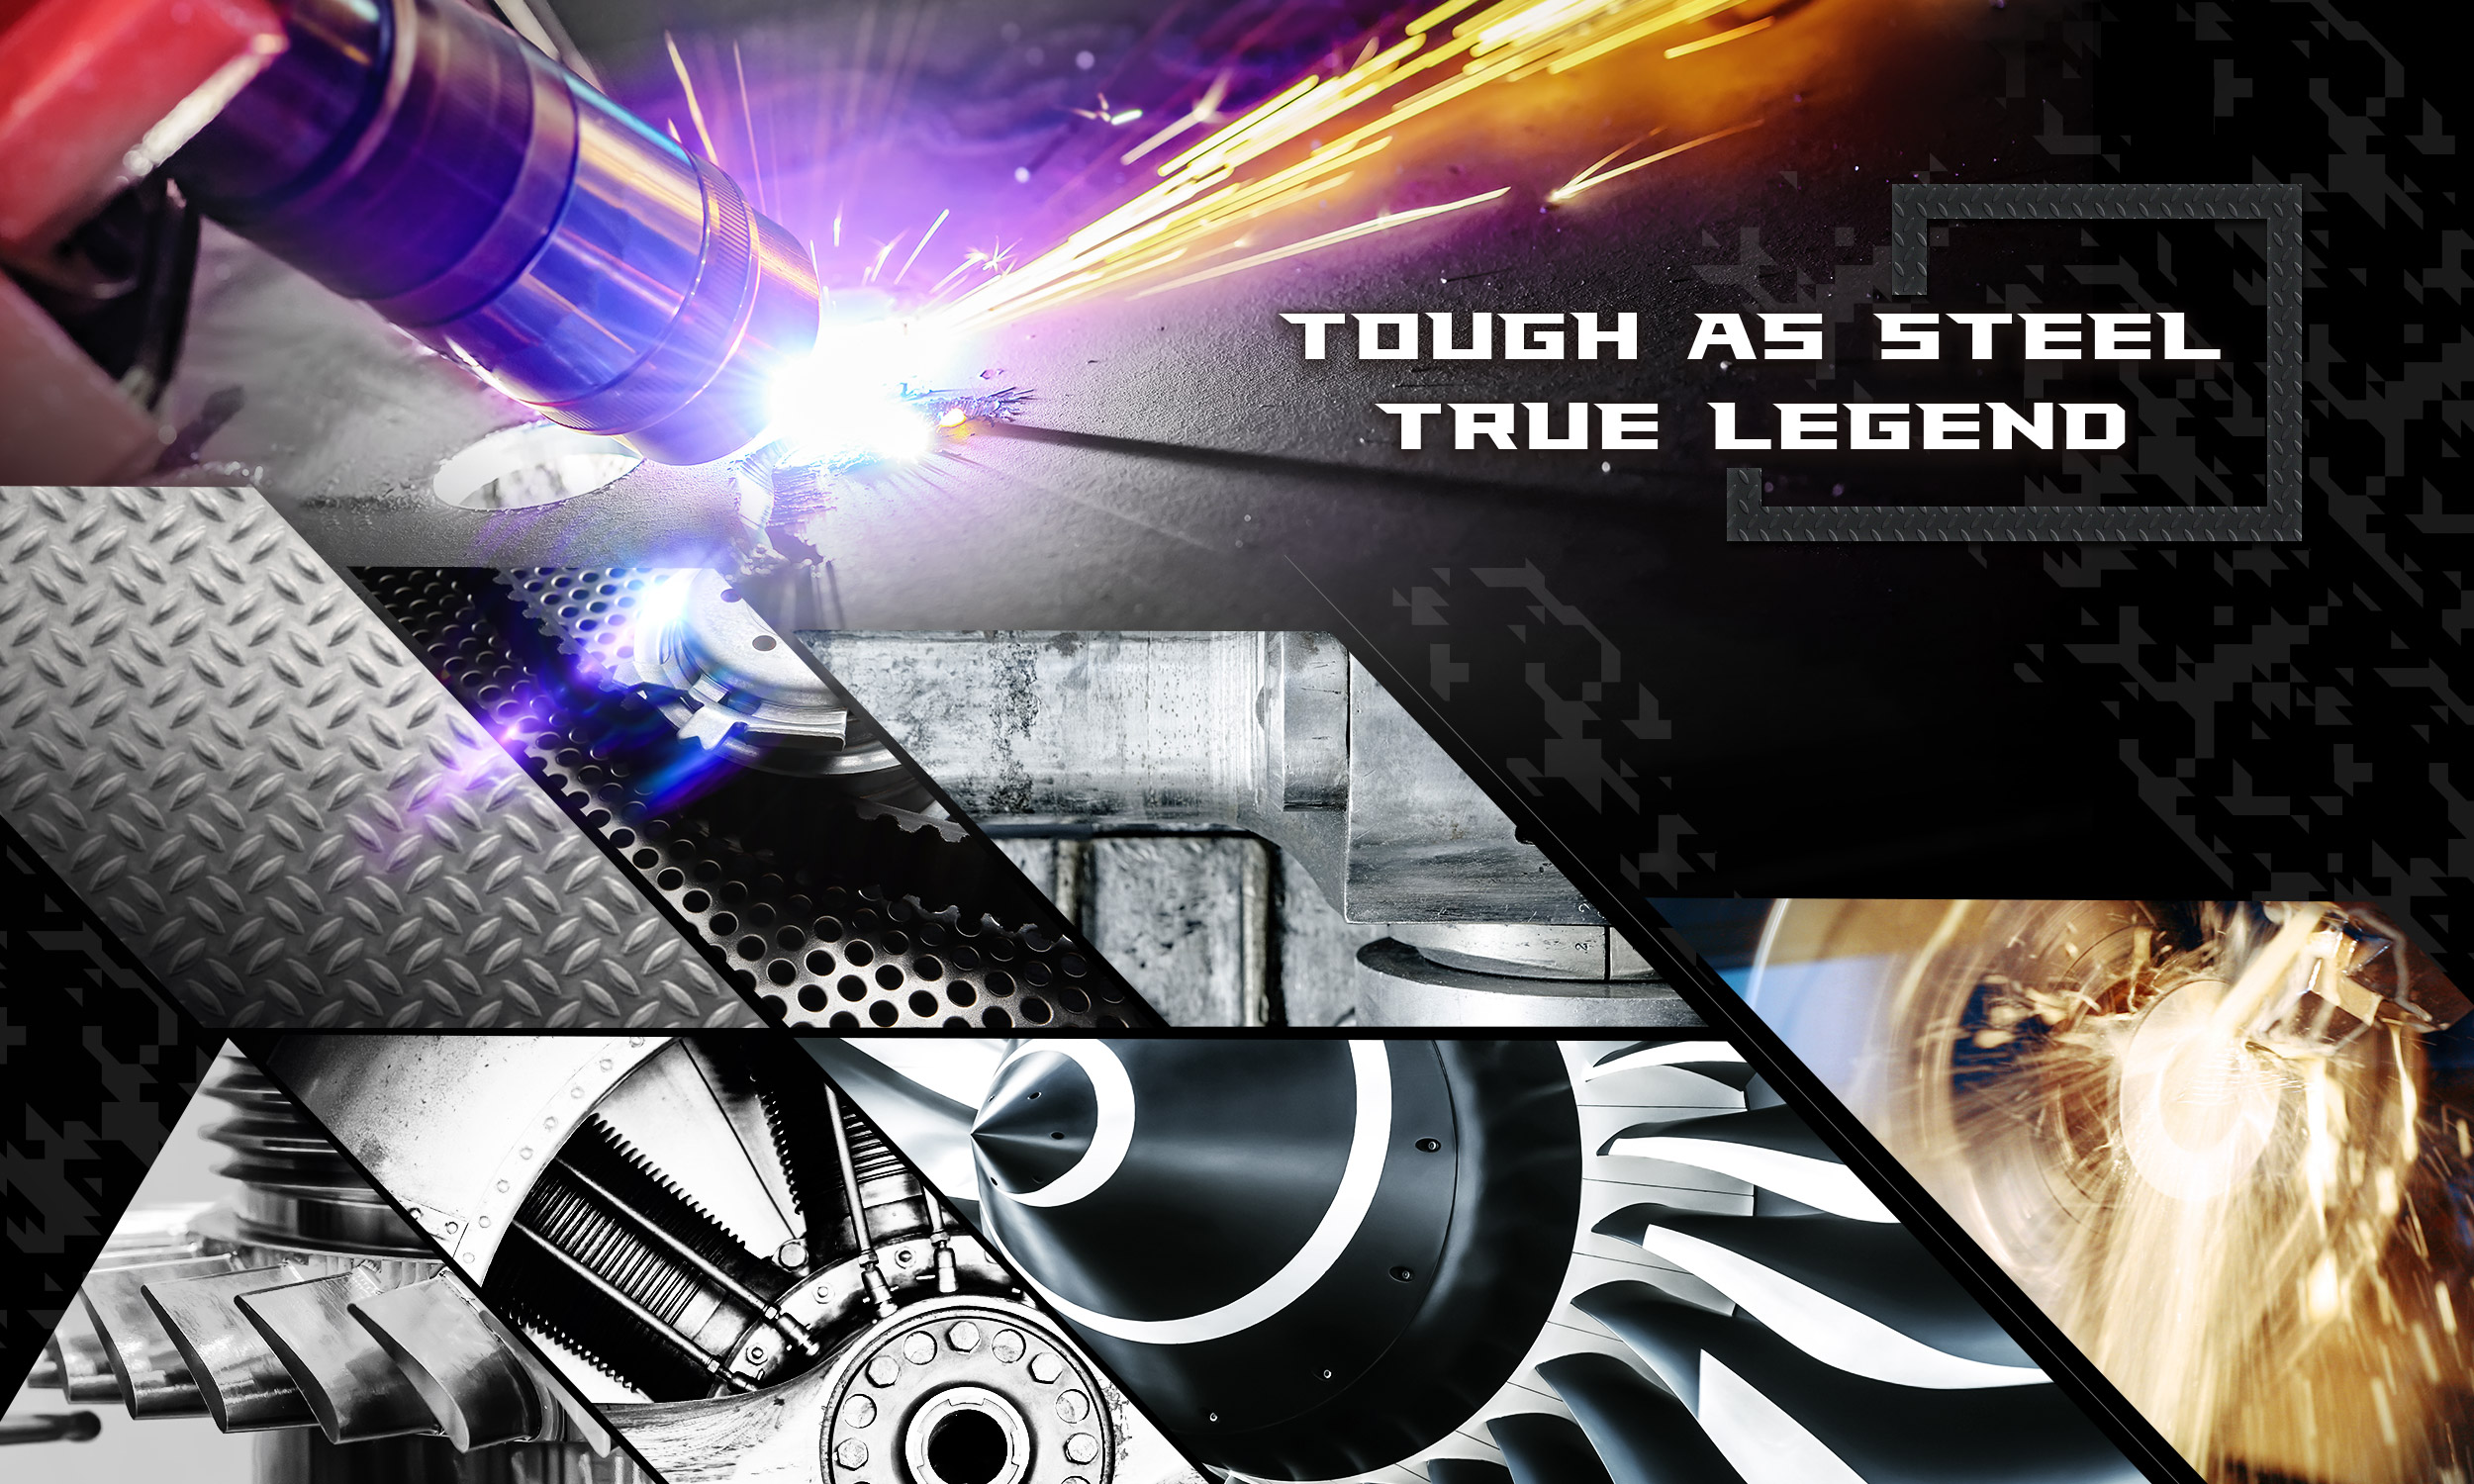 Tough As Steel True Legend Banner with Gears and Metalworking Graphics